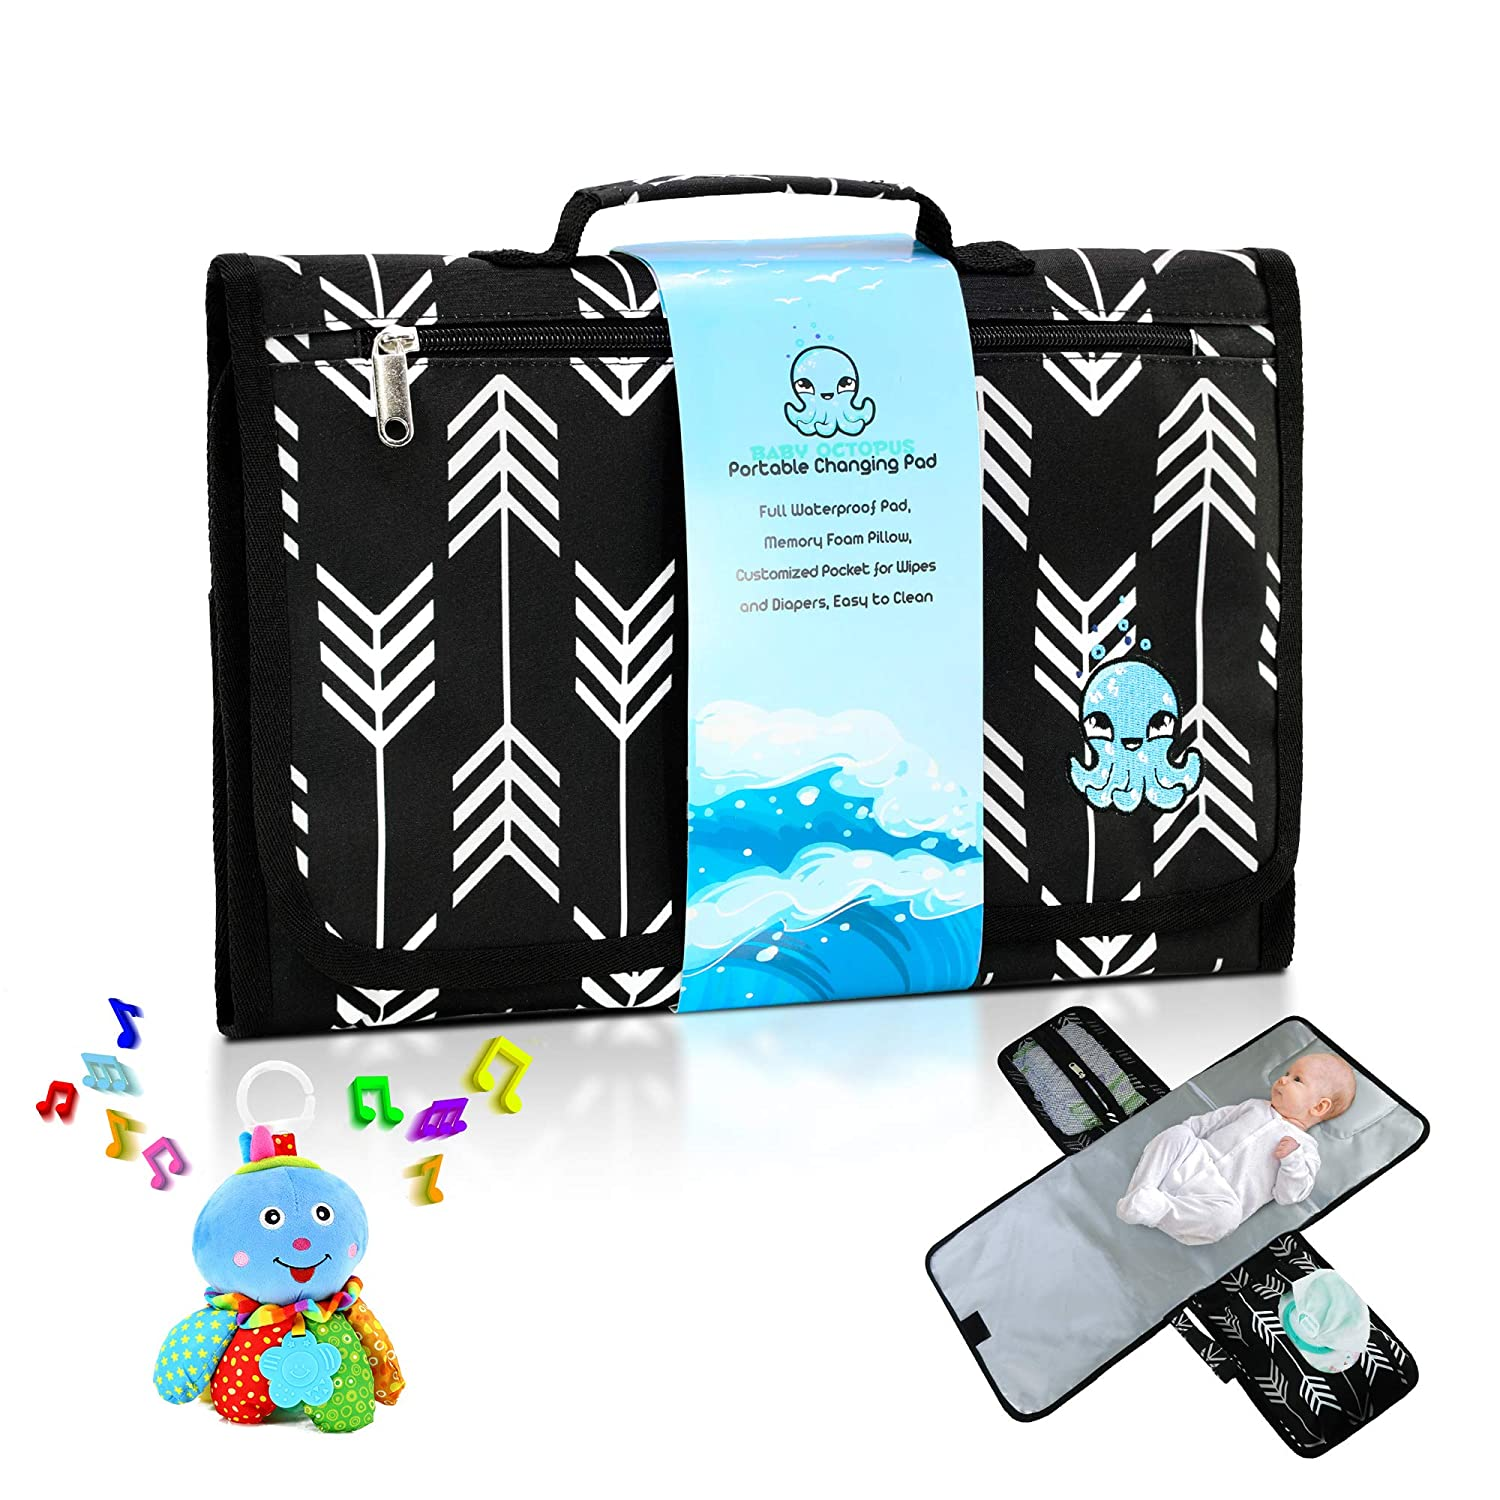 Portable Baby Changing Pad + Octopus Toy Bundle - Large Waterproof Diaper Changing Table Contoured Mattress with Soft Memory Foam Pillow – Travel-Friendly Infant Change Station Mat Set for Mom & Dad